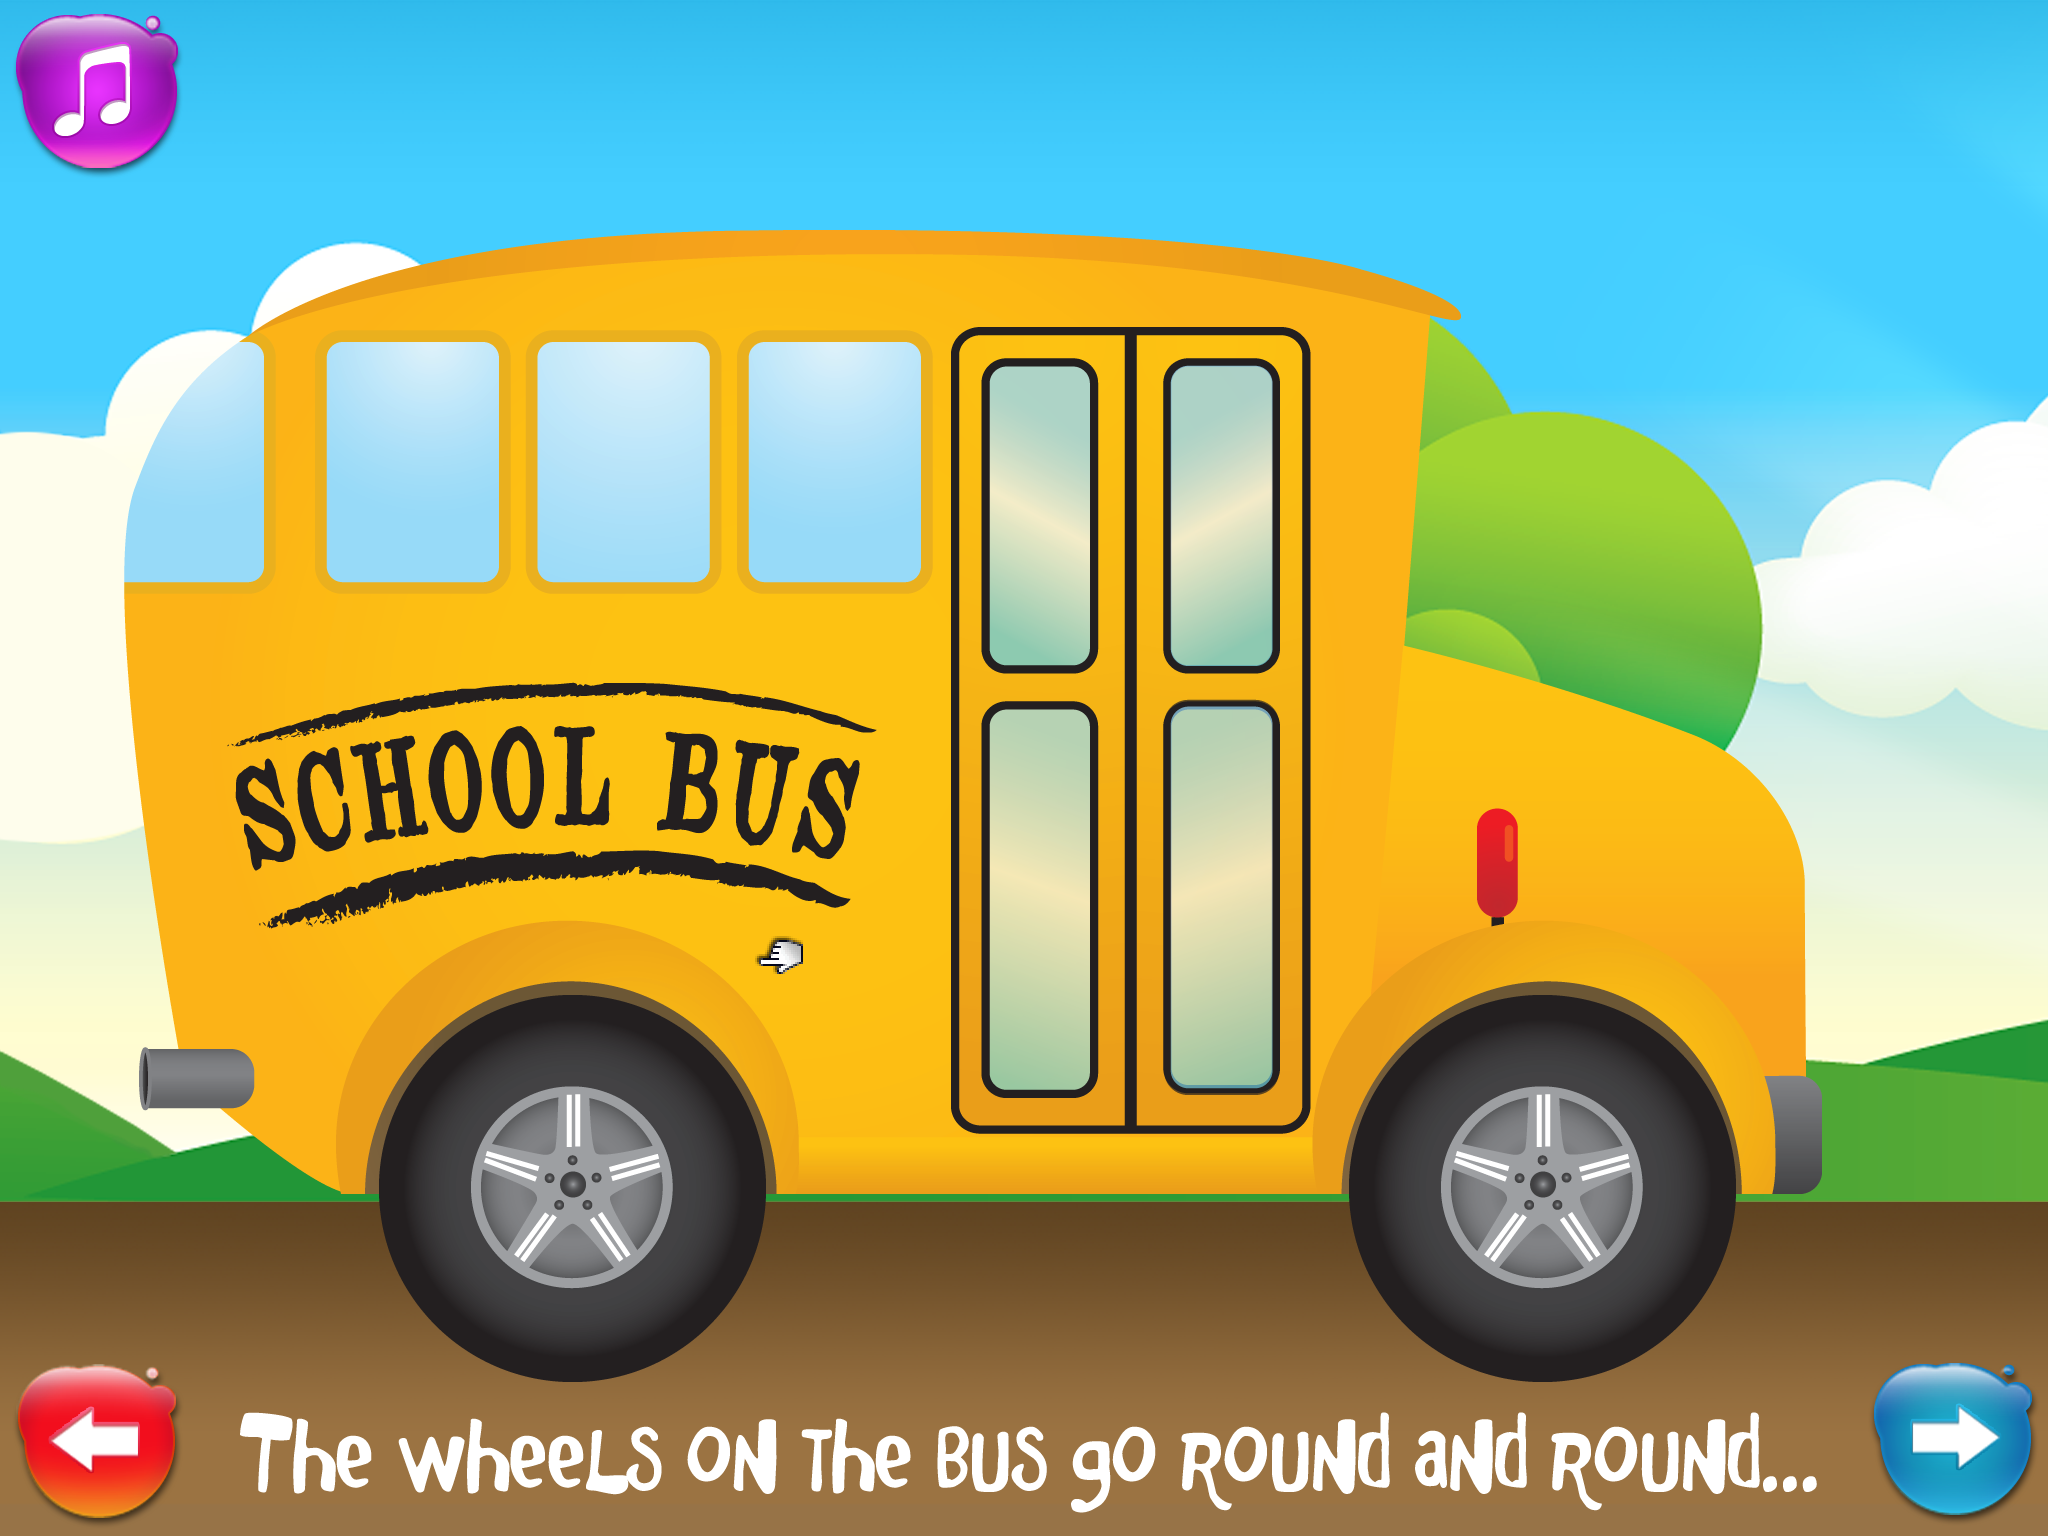 Screenshot of Wheels on the Bus app with image of a school bus with a right arrow (next page) in the bottom right corner & left arrow in bottom left corner.